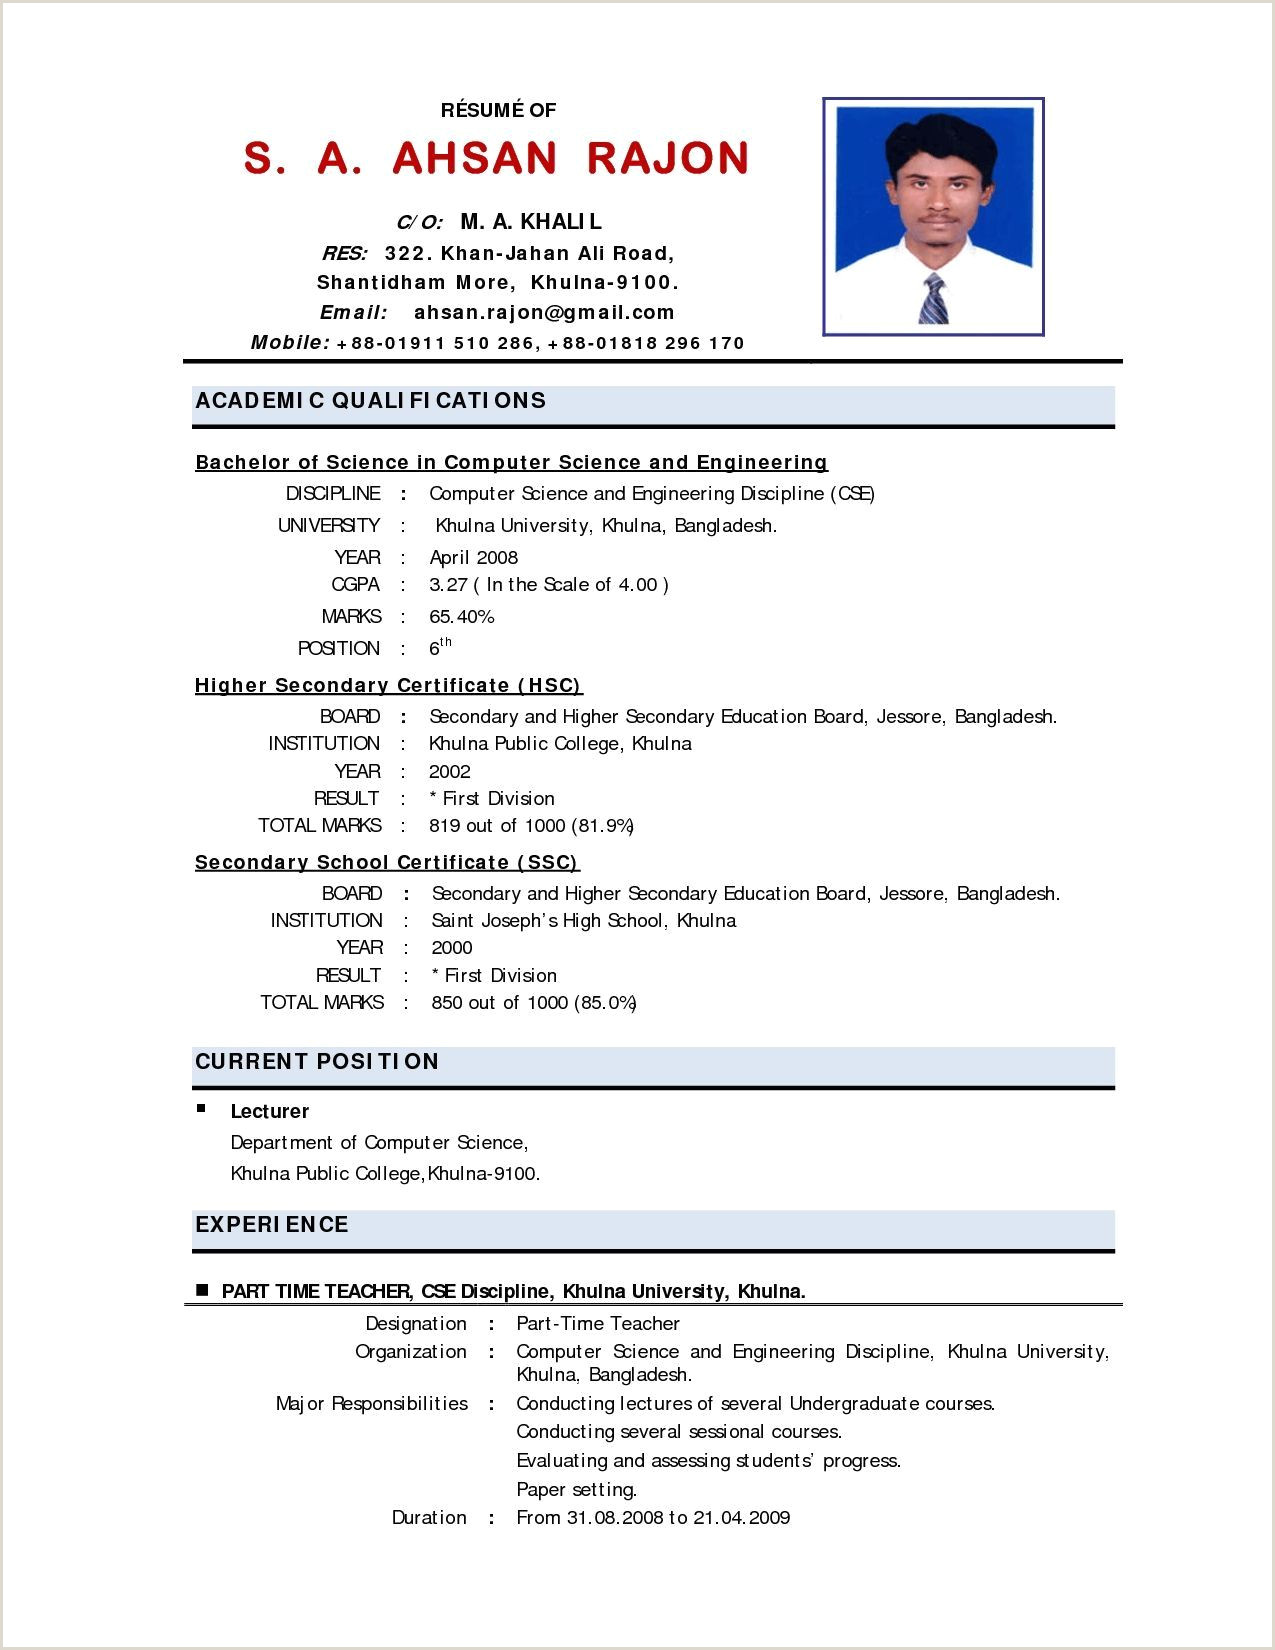 Latest Cv format In Ms Word In Bangladesh Cv Template Bangladesh 1 Cv Template